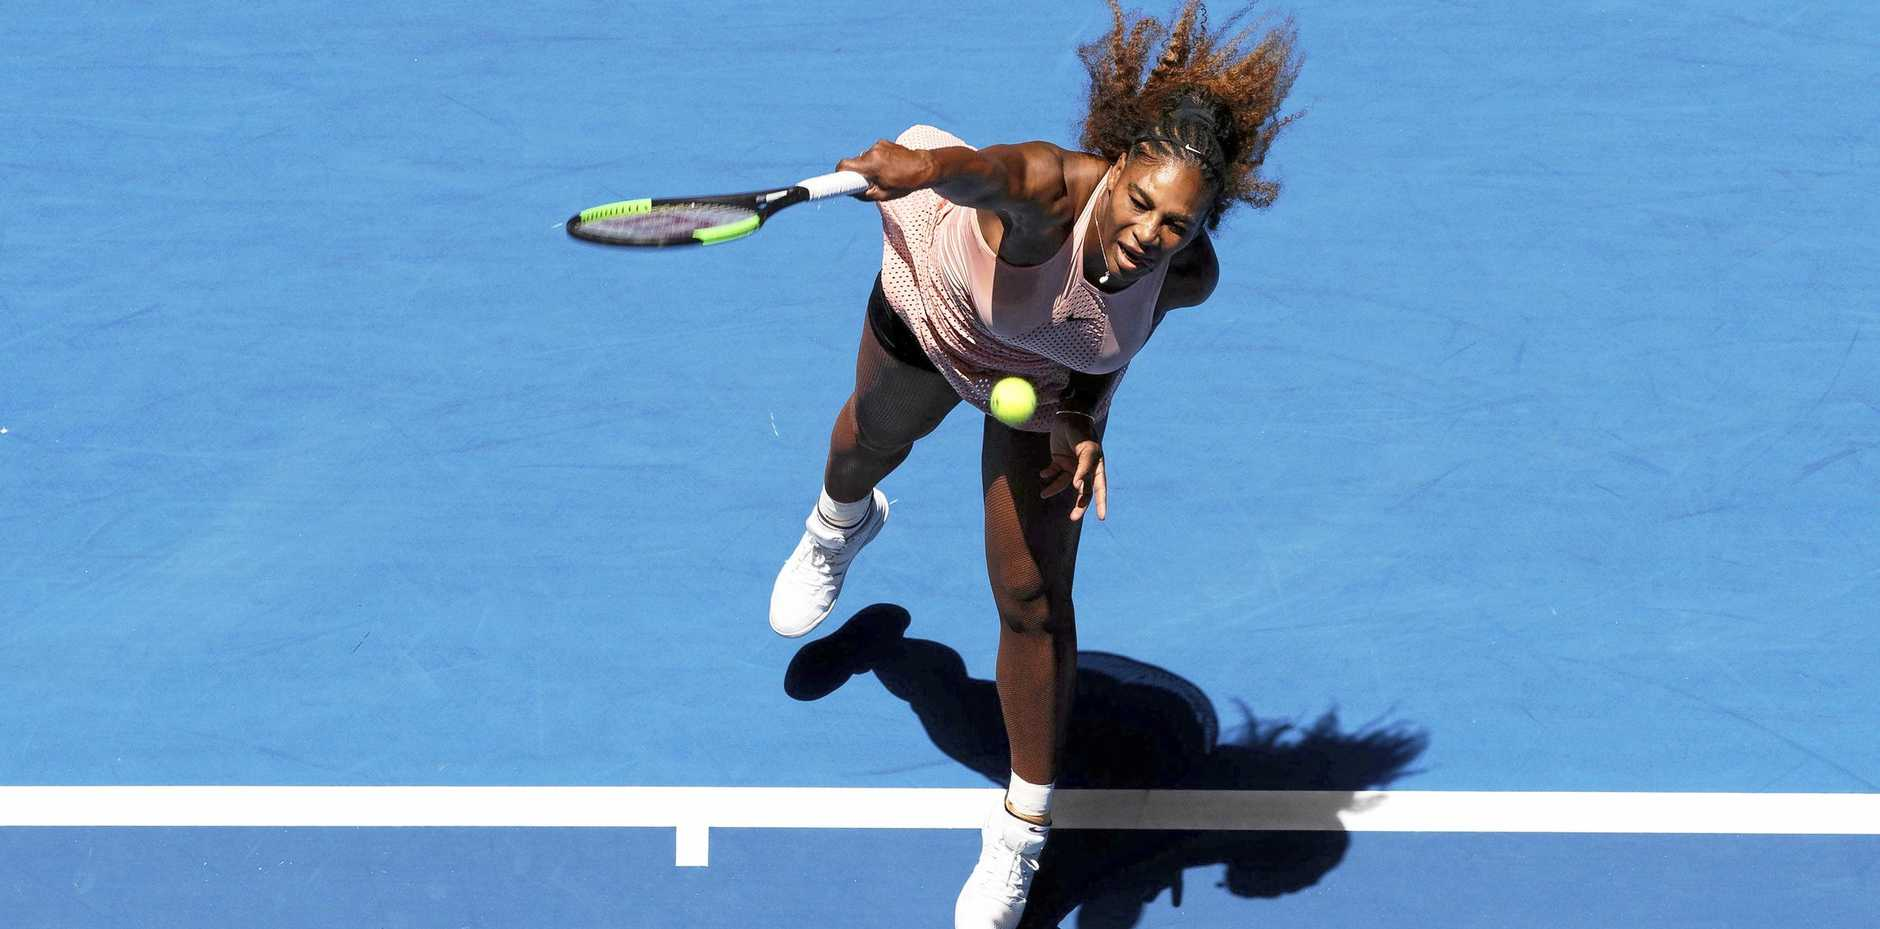 Serena Williams serves during her match against Britain's Katie Boulter at the Hopman Cup in Perth. Picture: Trevor Collens/AP